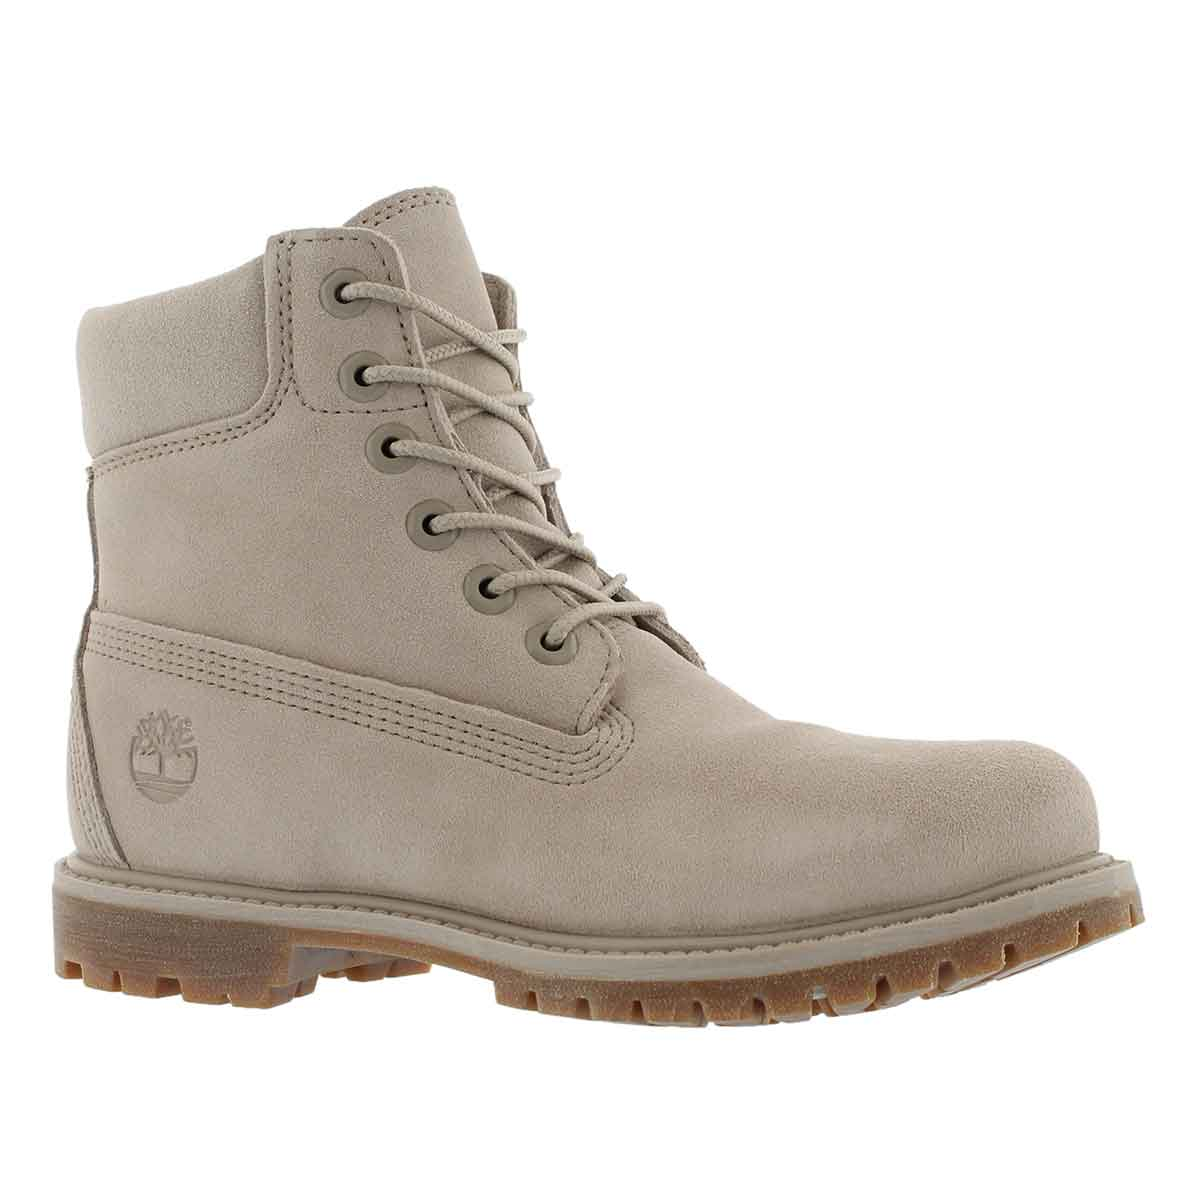 "TIMBERLAND WOMEN'S 6-INCH PREMIUM ""SUEDE PACK"" BOOTS"